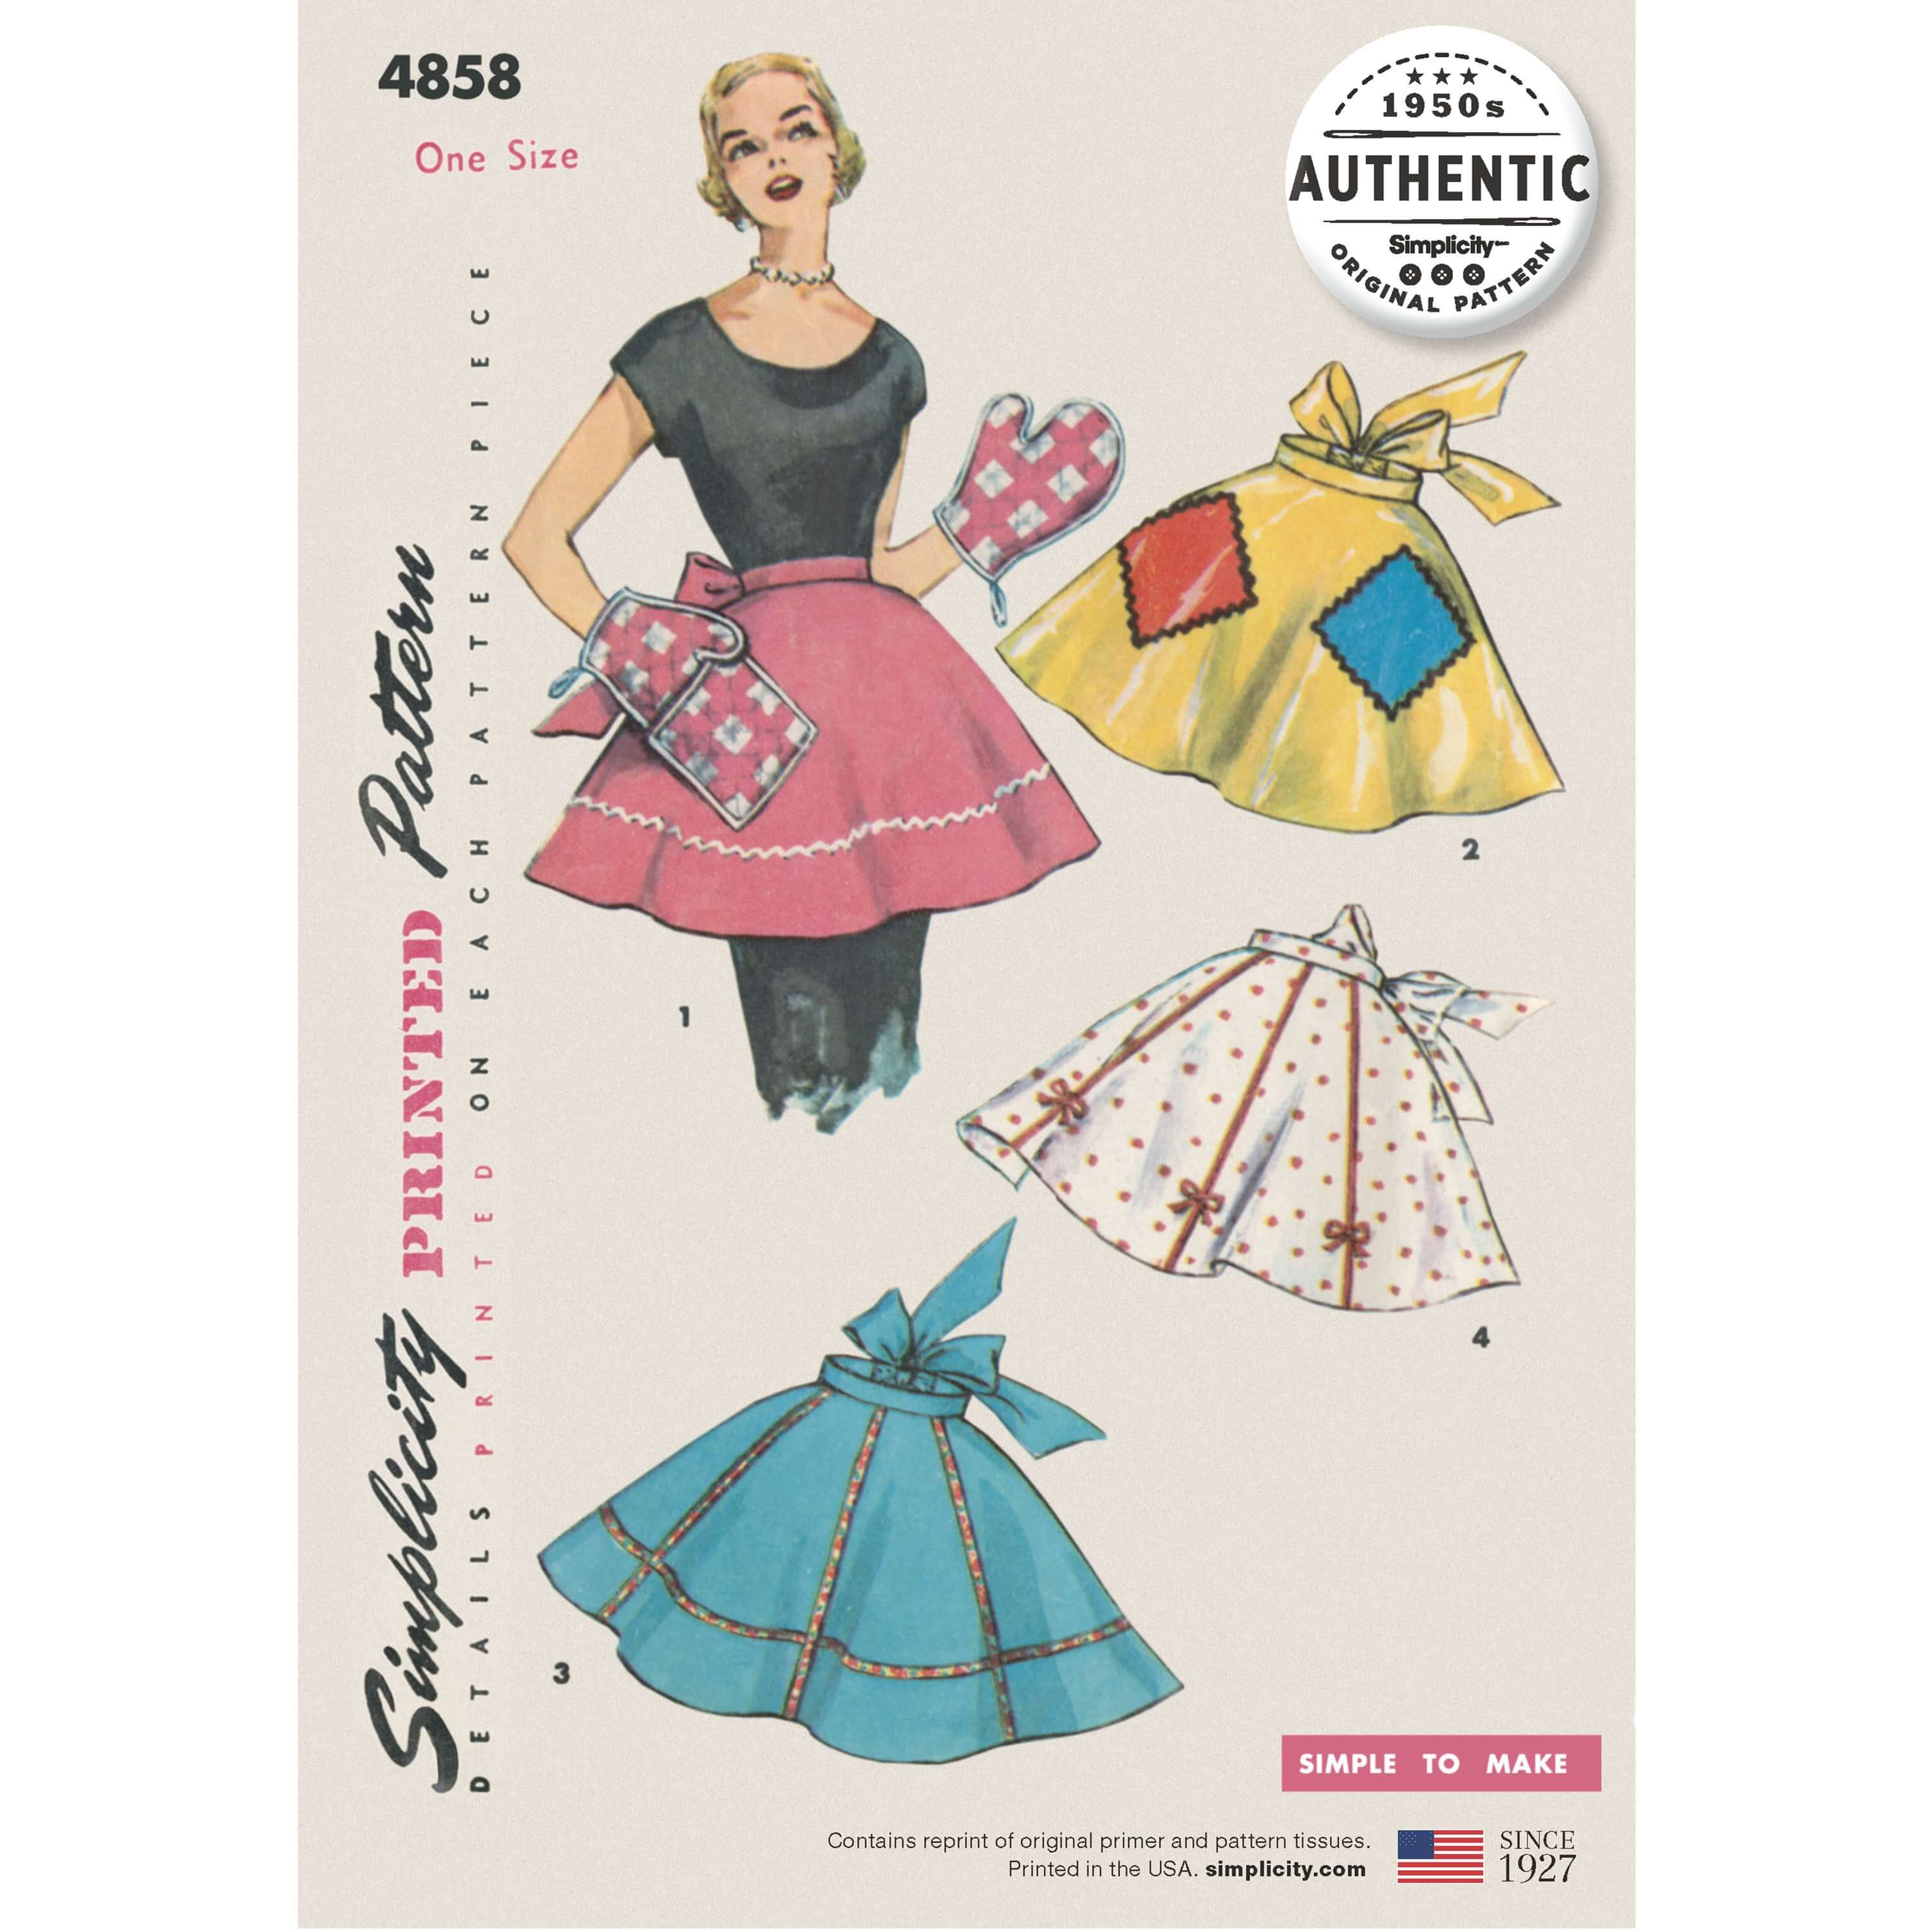 Simplicity Pattern 4858 One Size Vintage Apron Plus Mitts 1960s